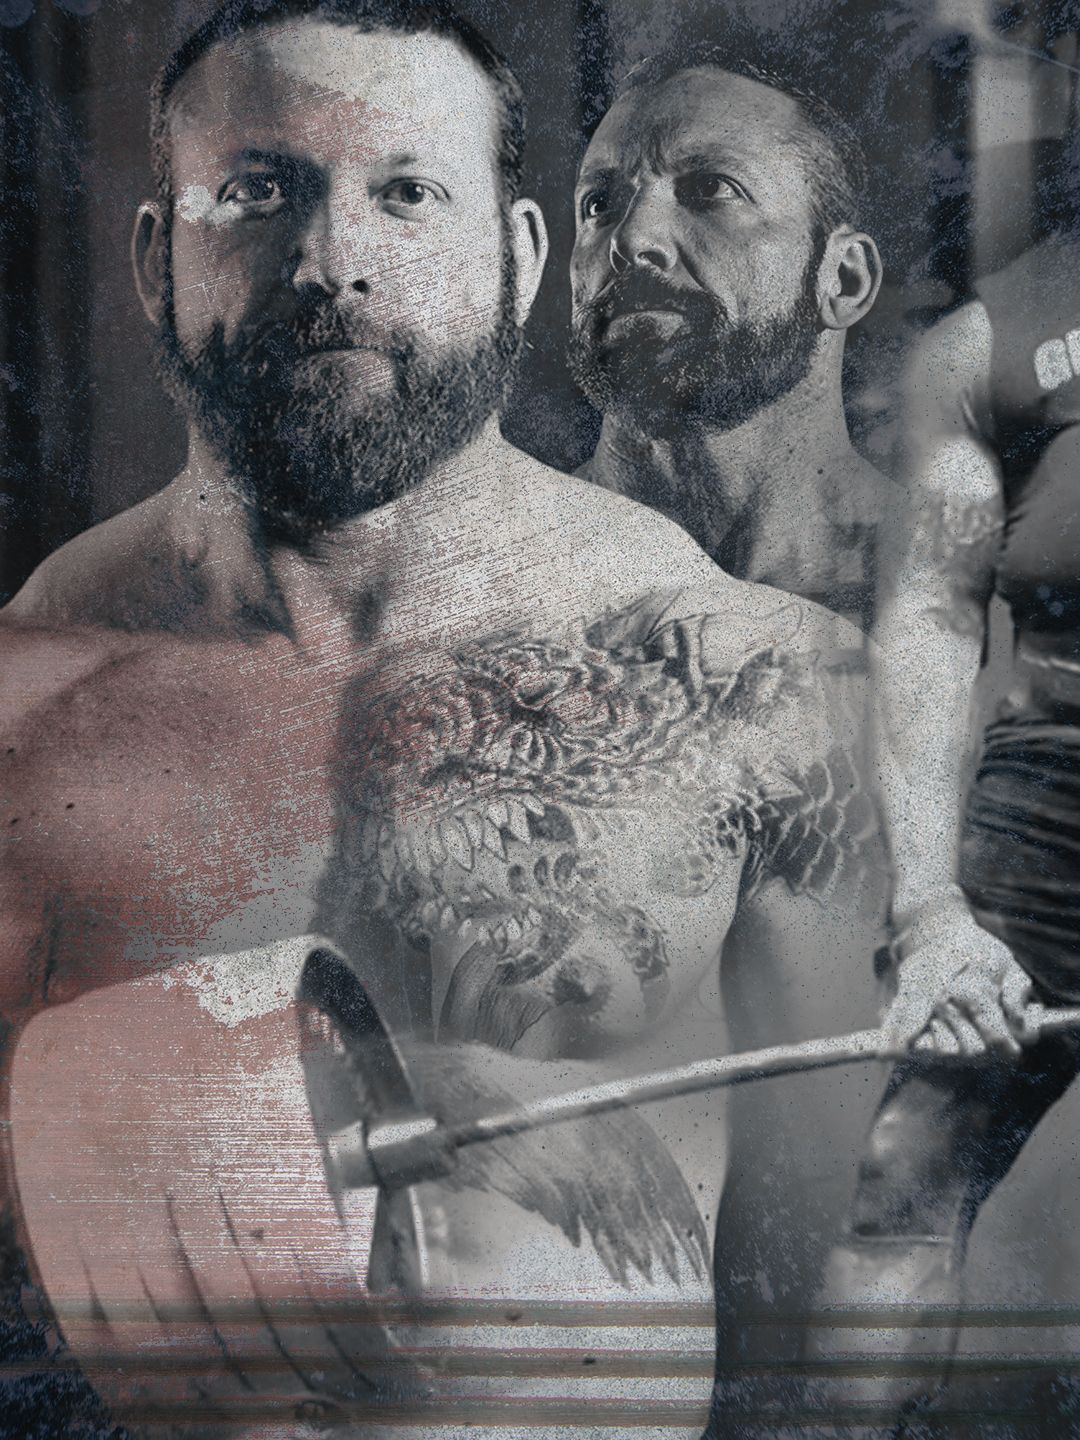 Best of Team Never Quit Podcast | Chris Duffin: Guinness World Record Holder in Powerlifting, Author of The Eagle and The Dragon